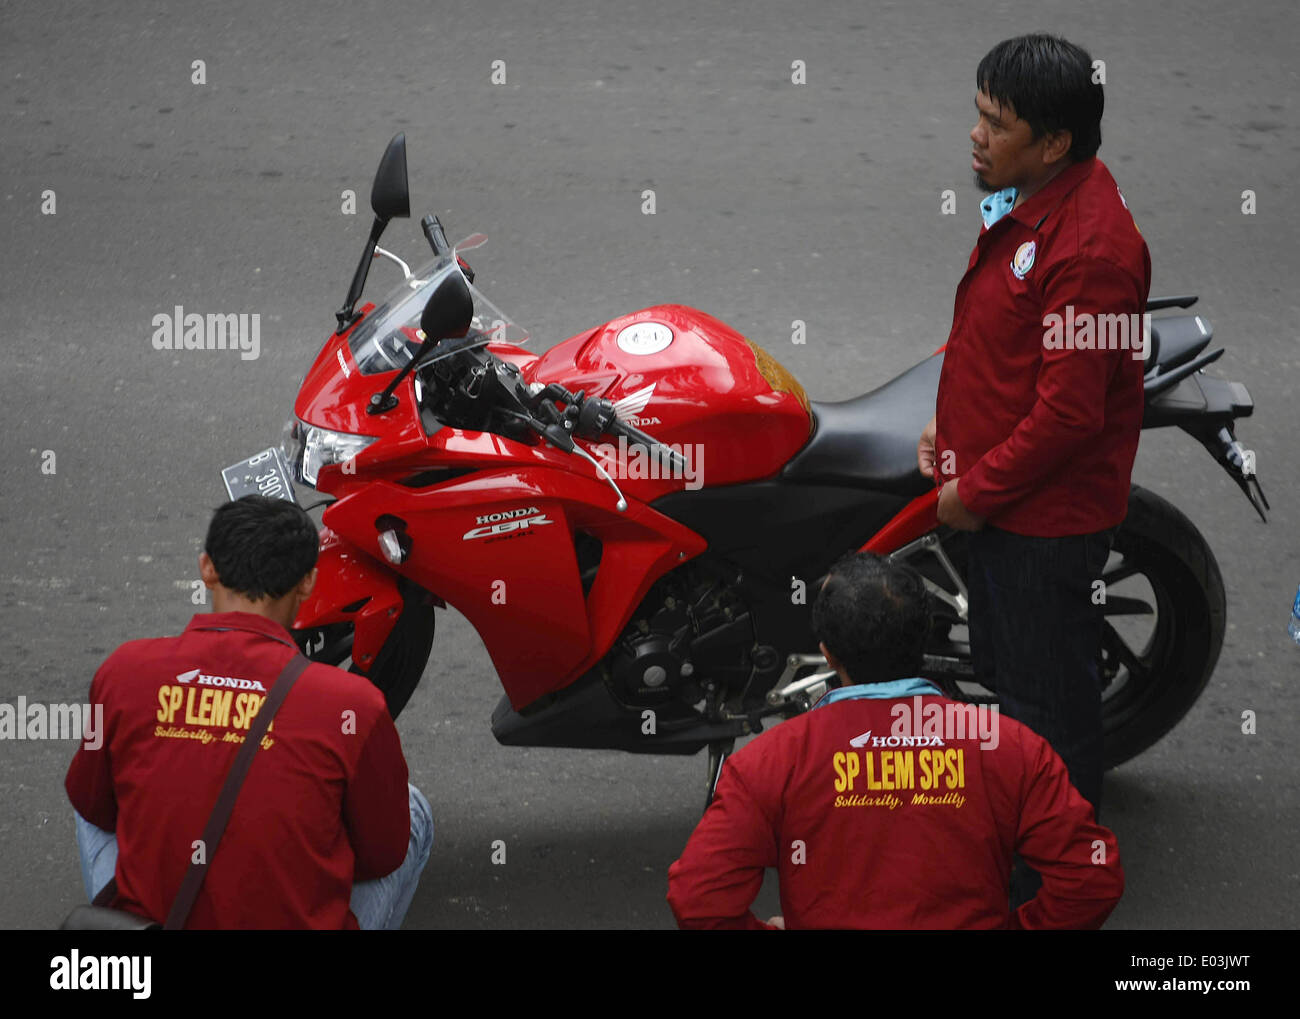 Honda 250 Stock Photos Images Alamy All New Cbr 150r Victory Black Red Jakarta Central Indonesia 1st May 2014 Worker With Racing Motorcycle